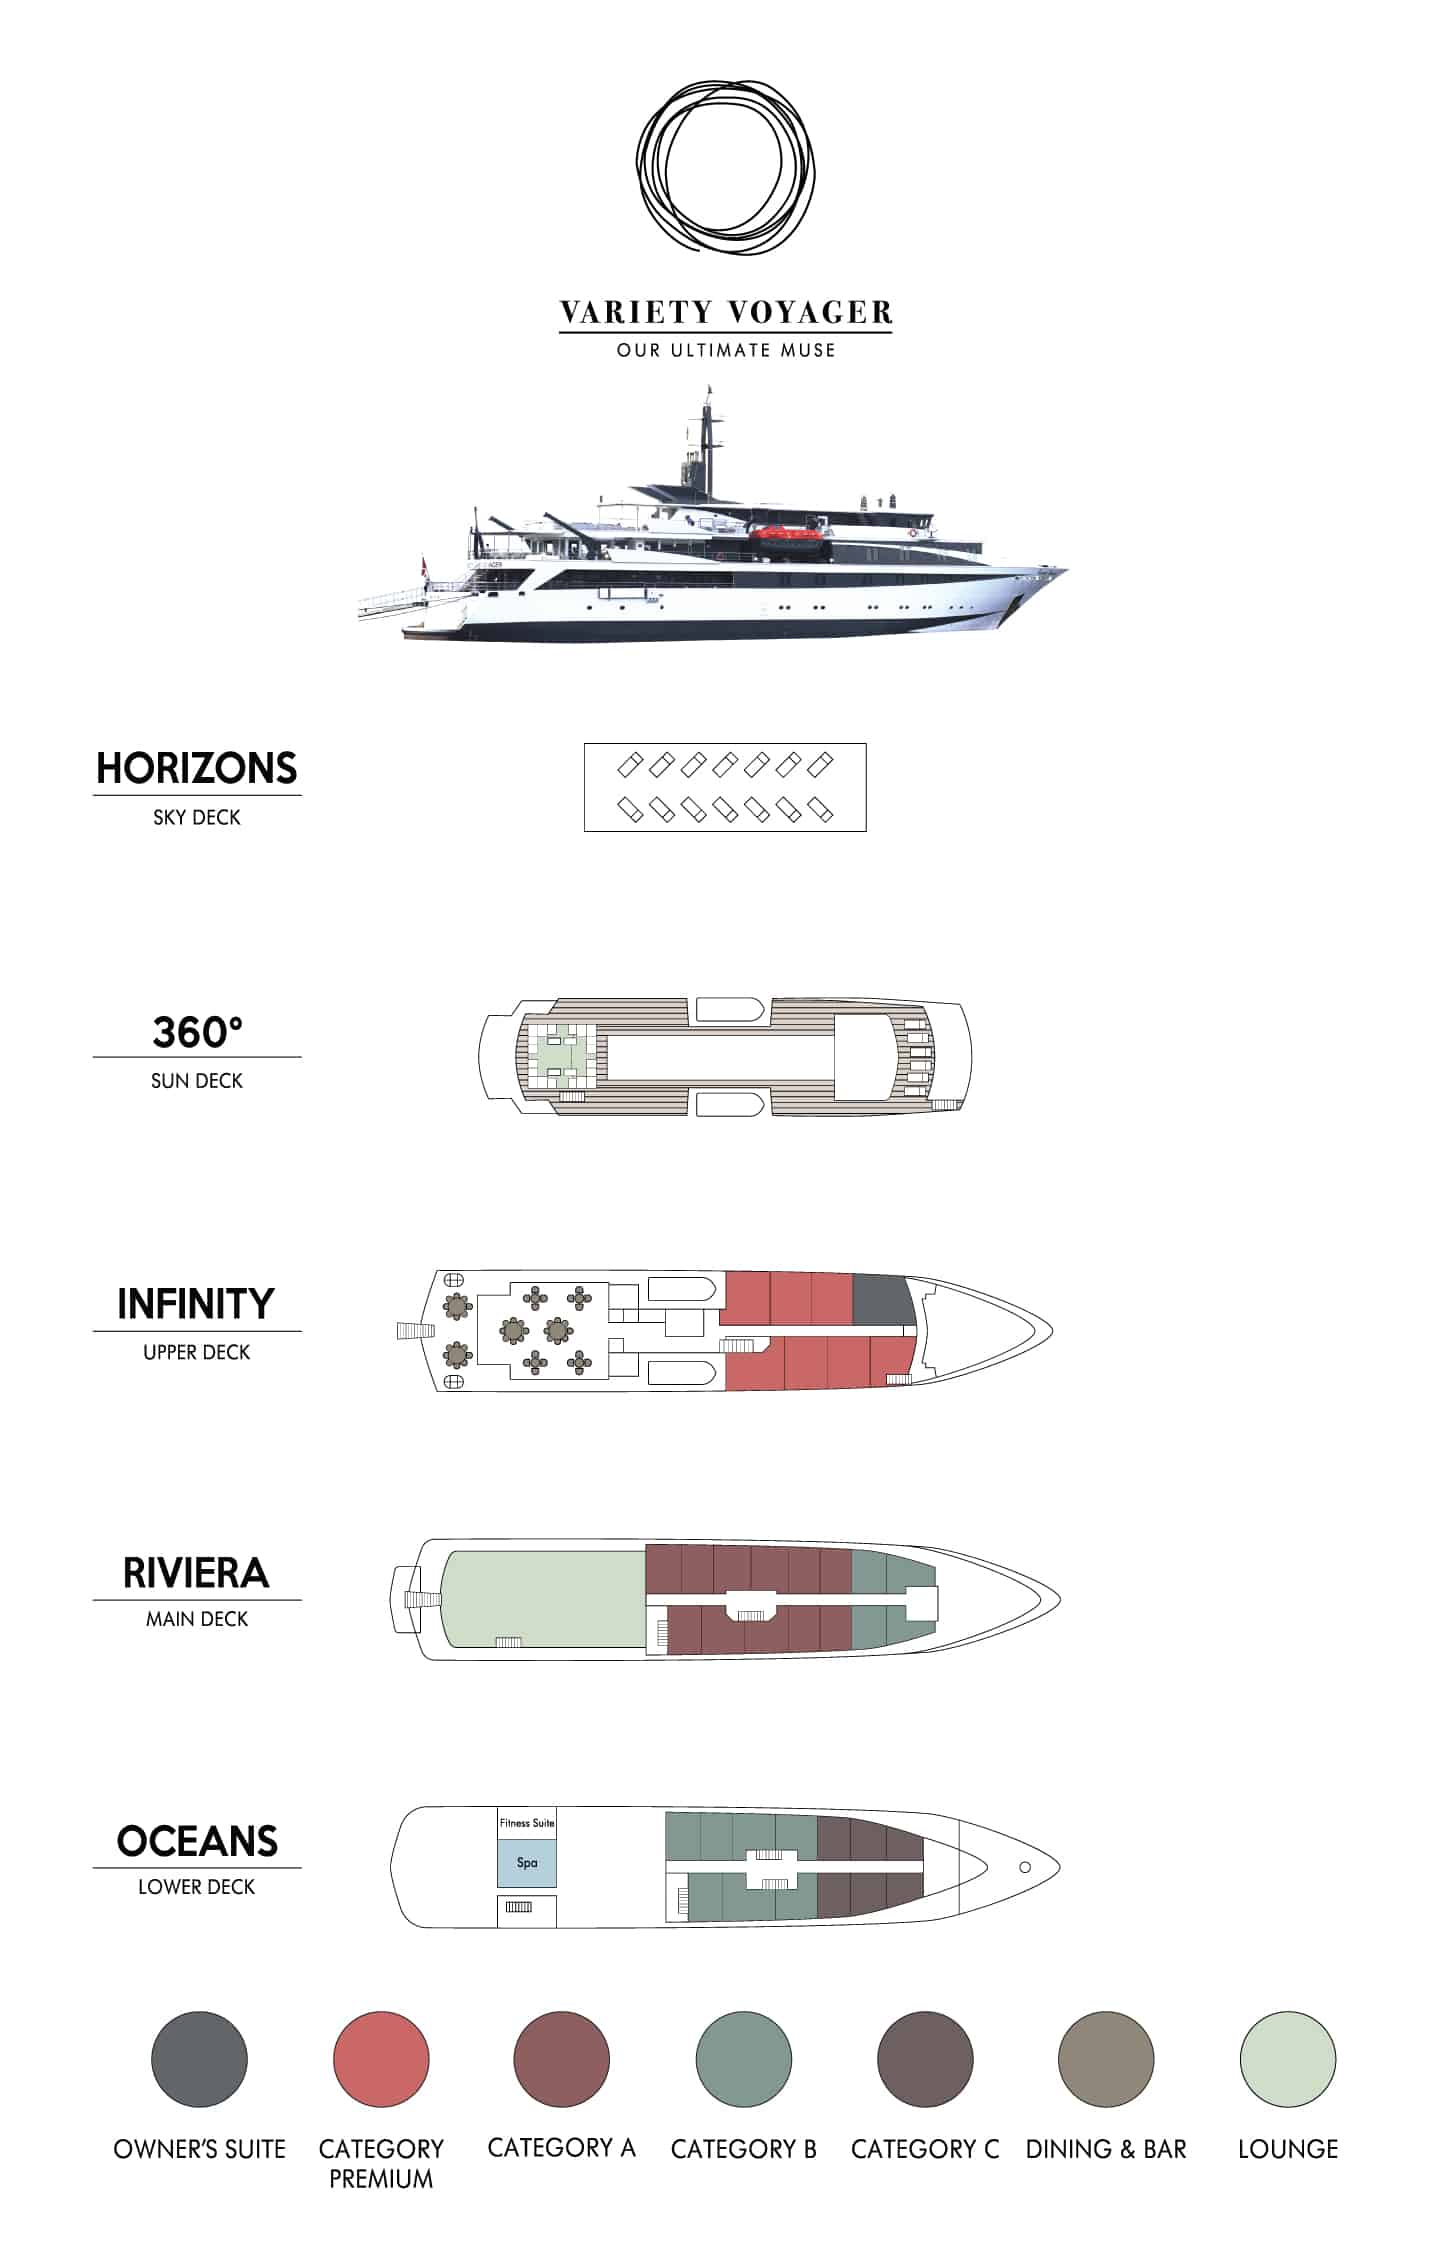 Chart showing the Variety Voyager ship deck plan with 5 decks and a ship profile.